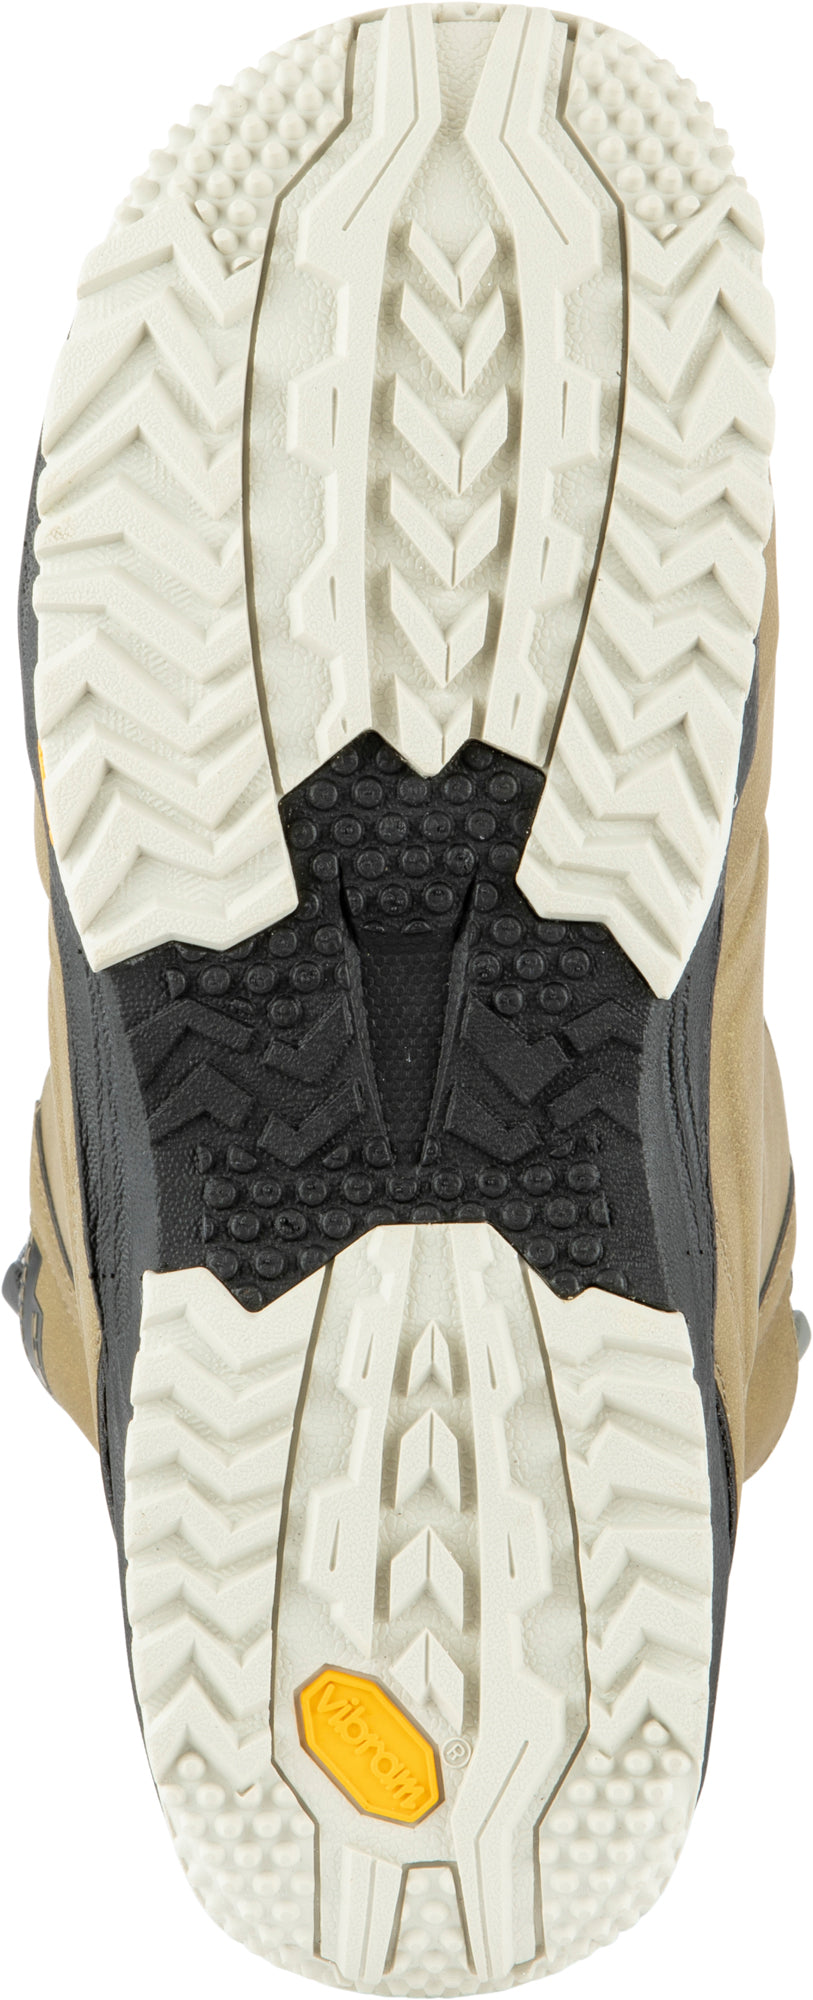 2021 Nitro Team Tls Snowboard Boots in Olive and Black